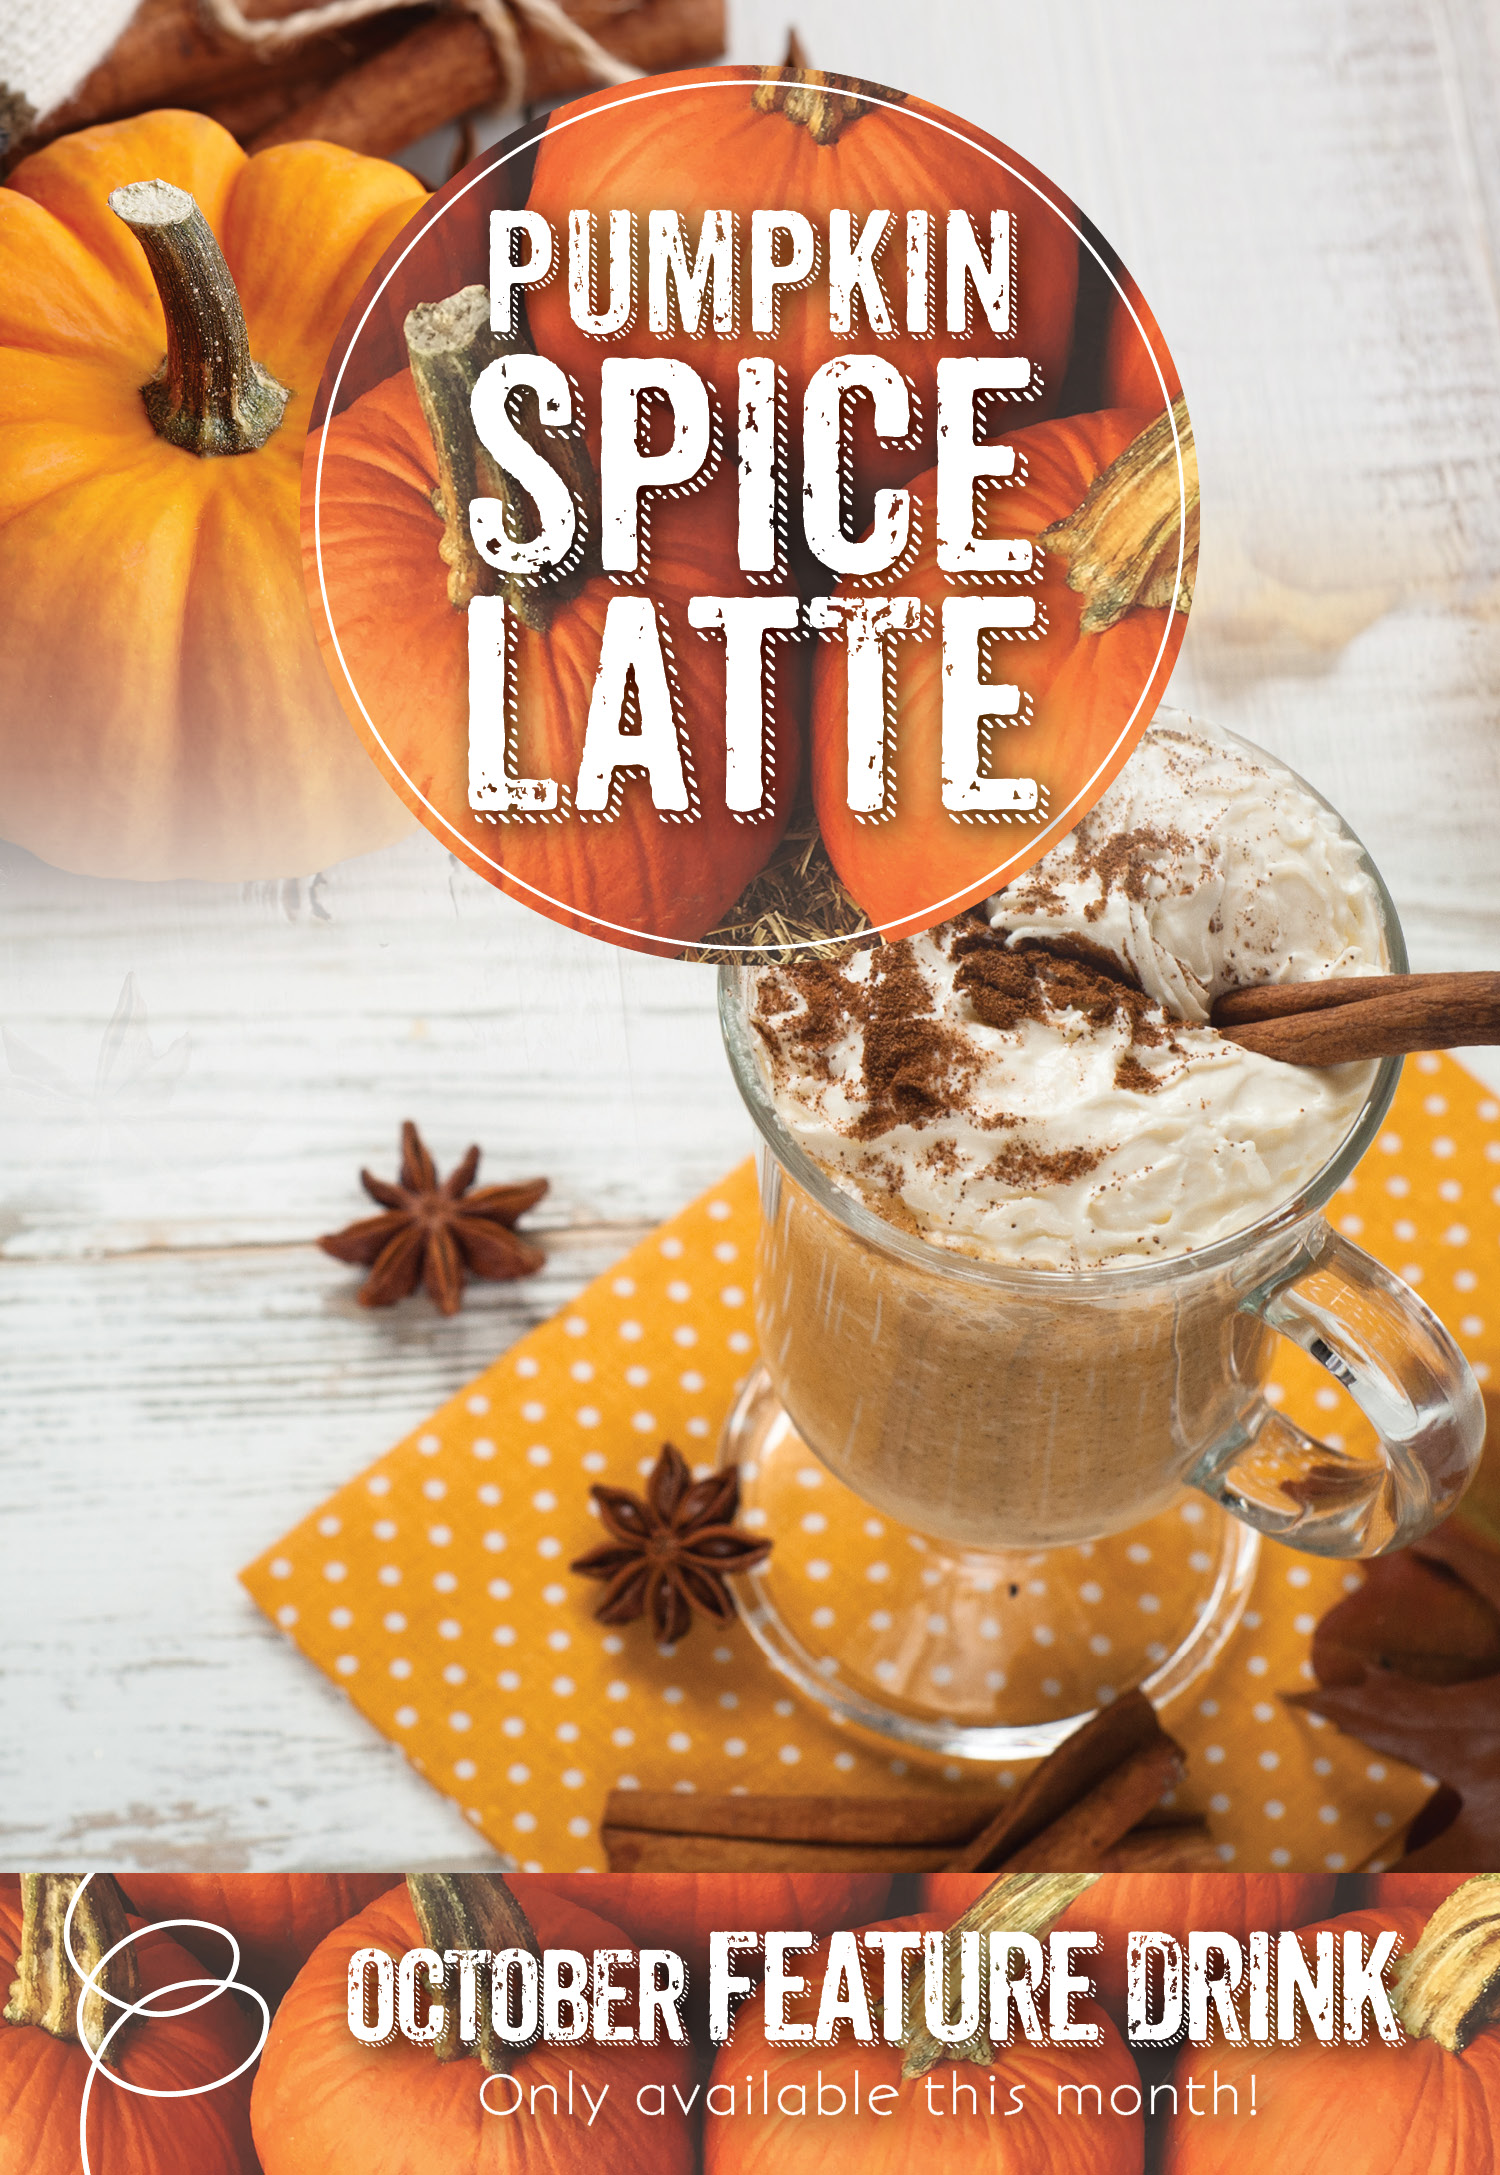 Enjoy a Pumpkin Spice Latte at the Invermere Bakery